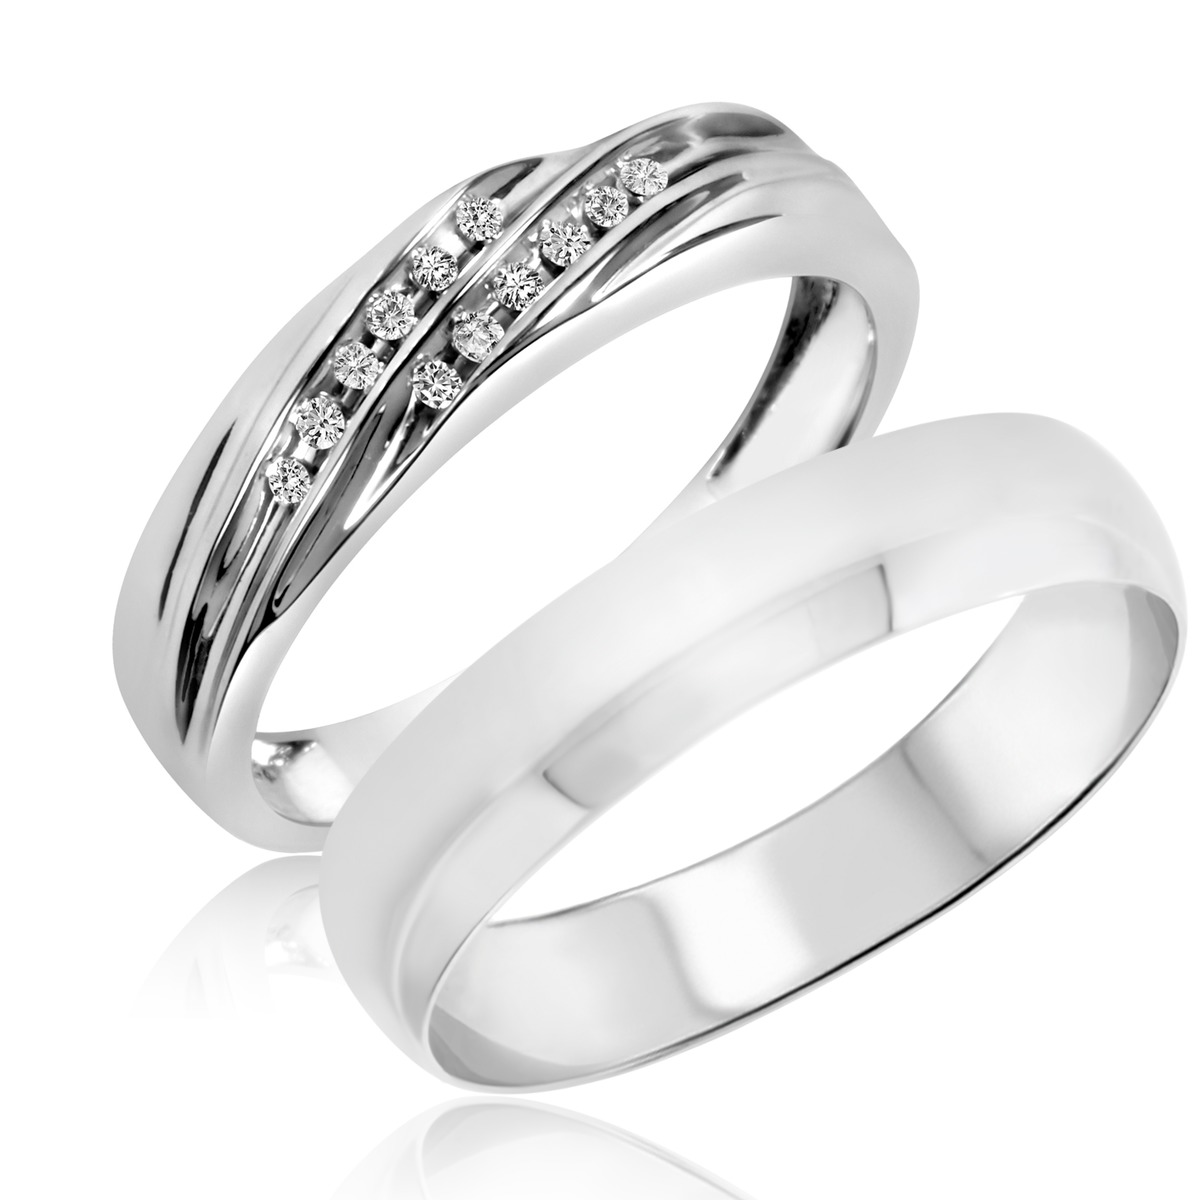 1/15 Carat T.W. Round Cut Diamond His and Hers Wedding Band Set 14K White Gold